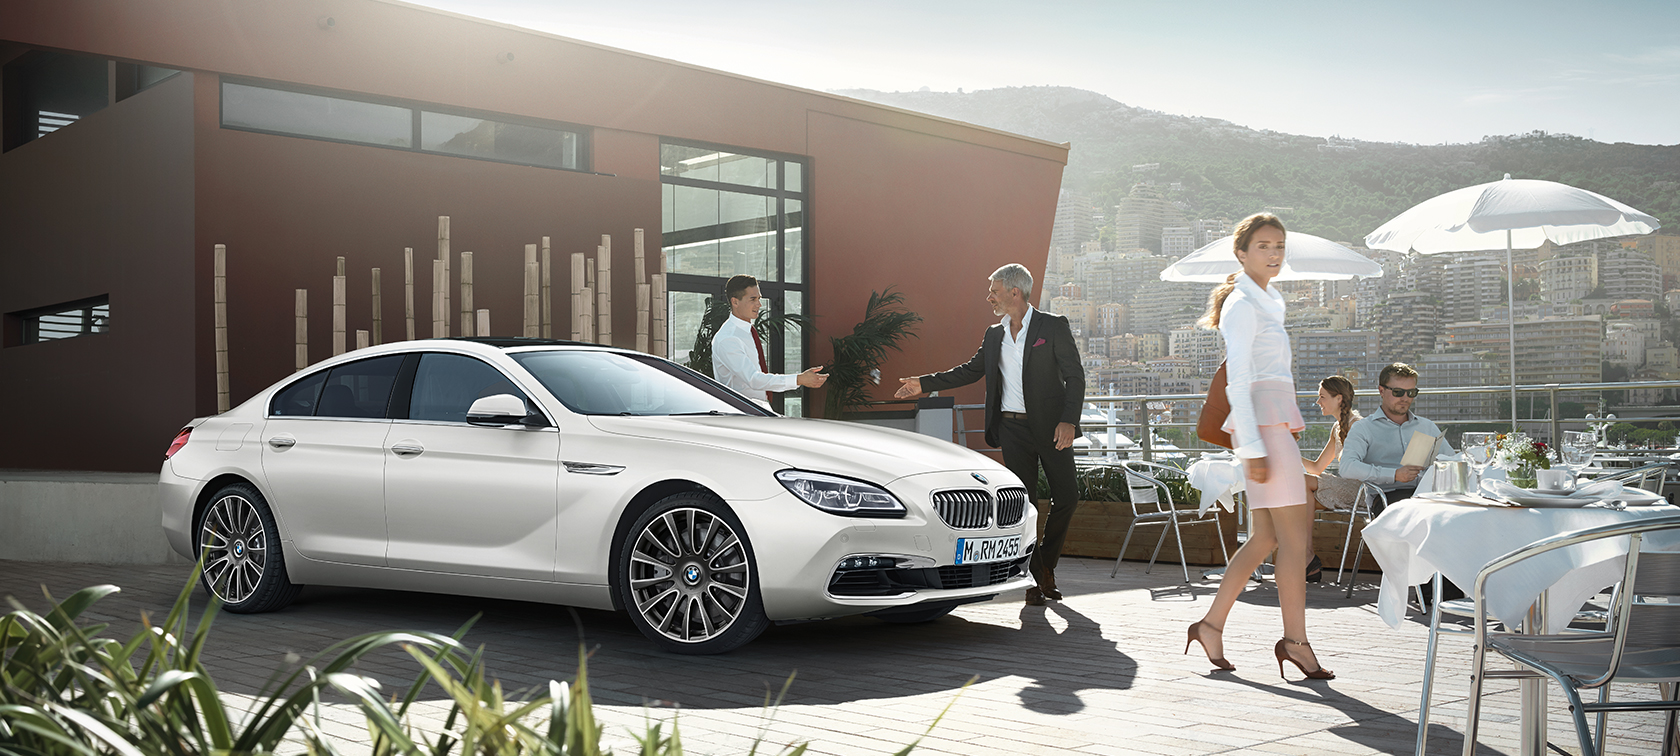 Comfort in the BMW 6 Series Gran Coupé